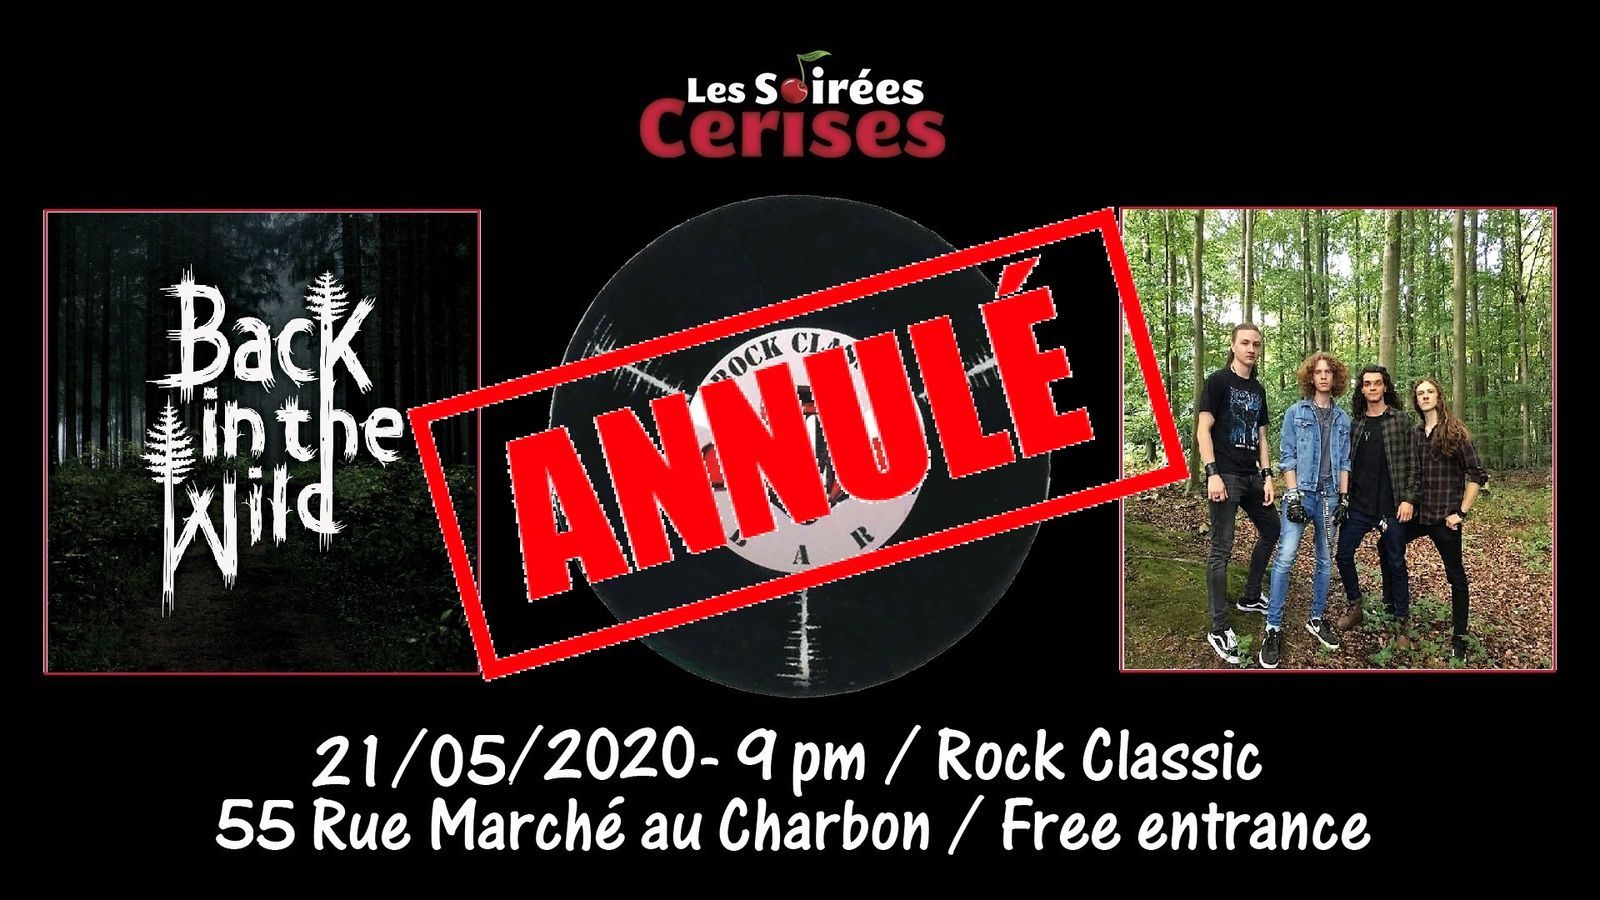 🎵 Back In The Wild @ Rock Classic - 21/05/2020 - annulé